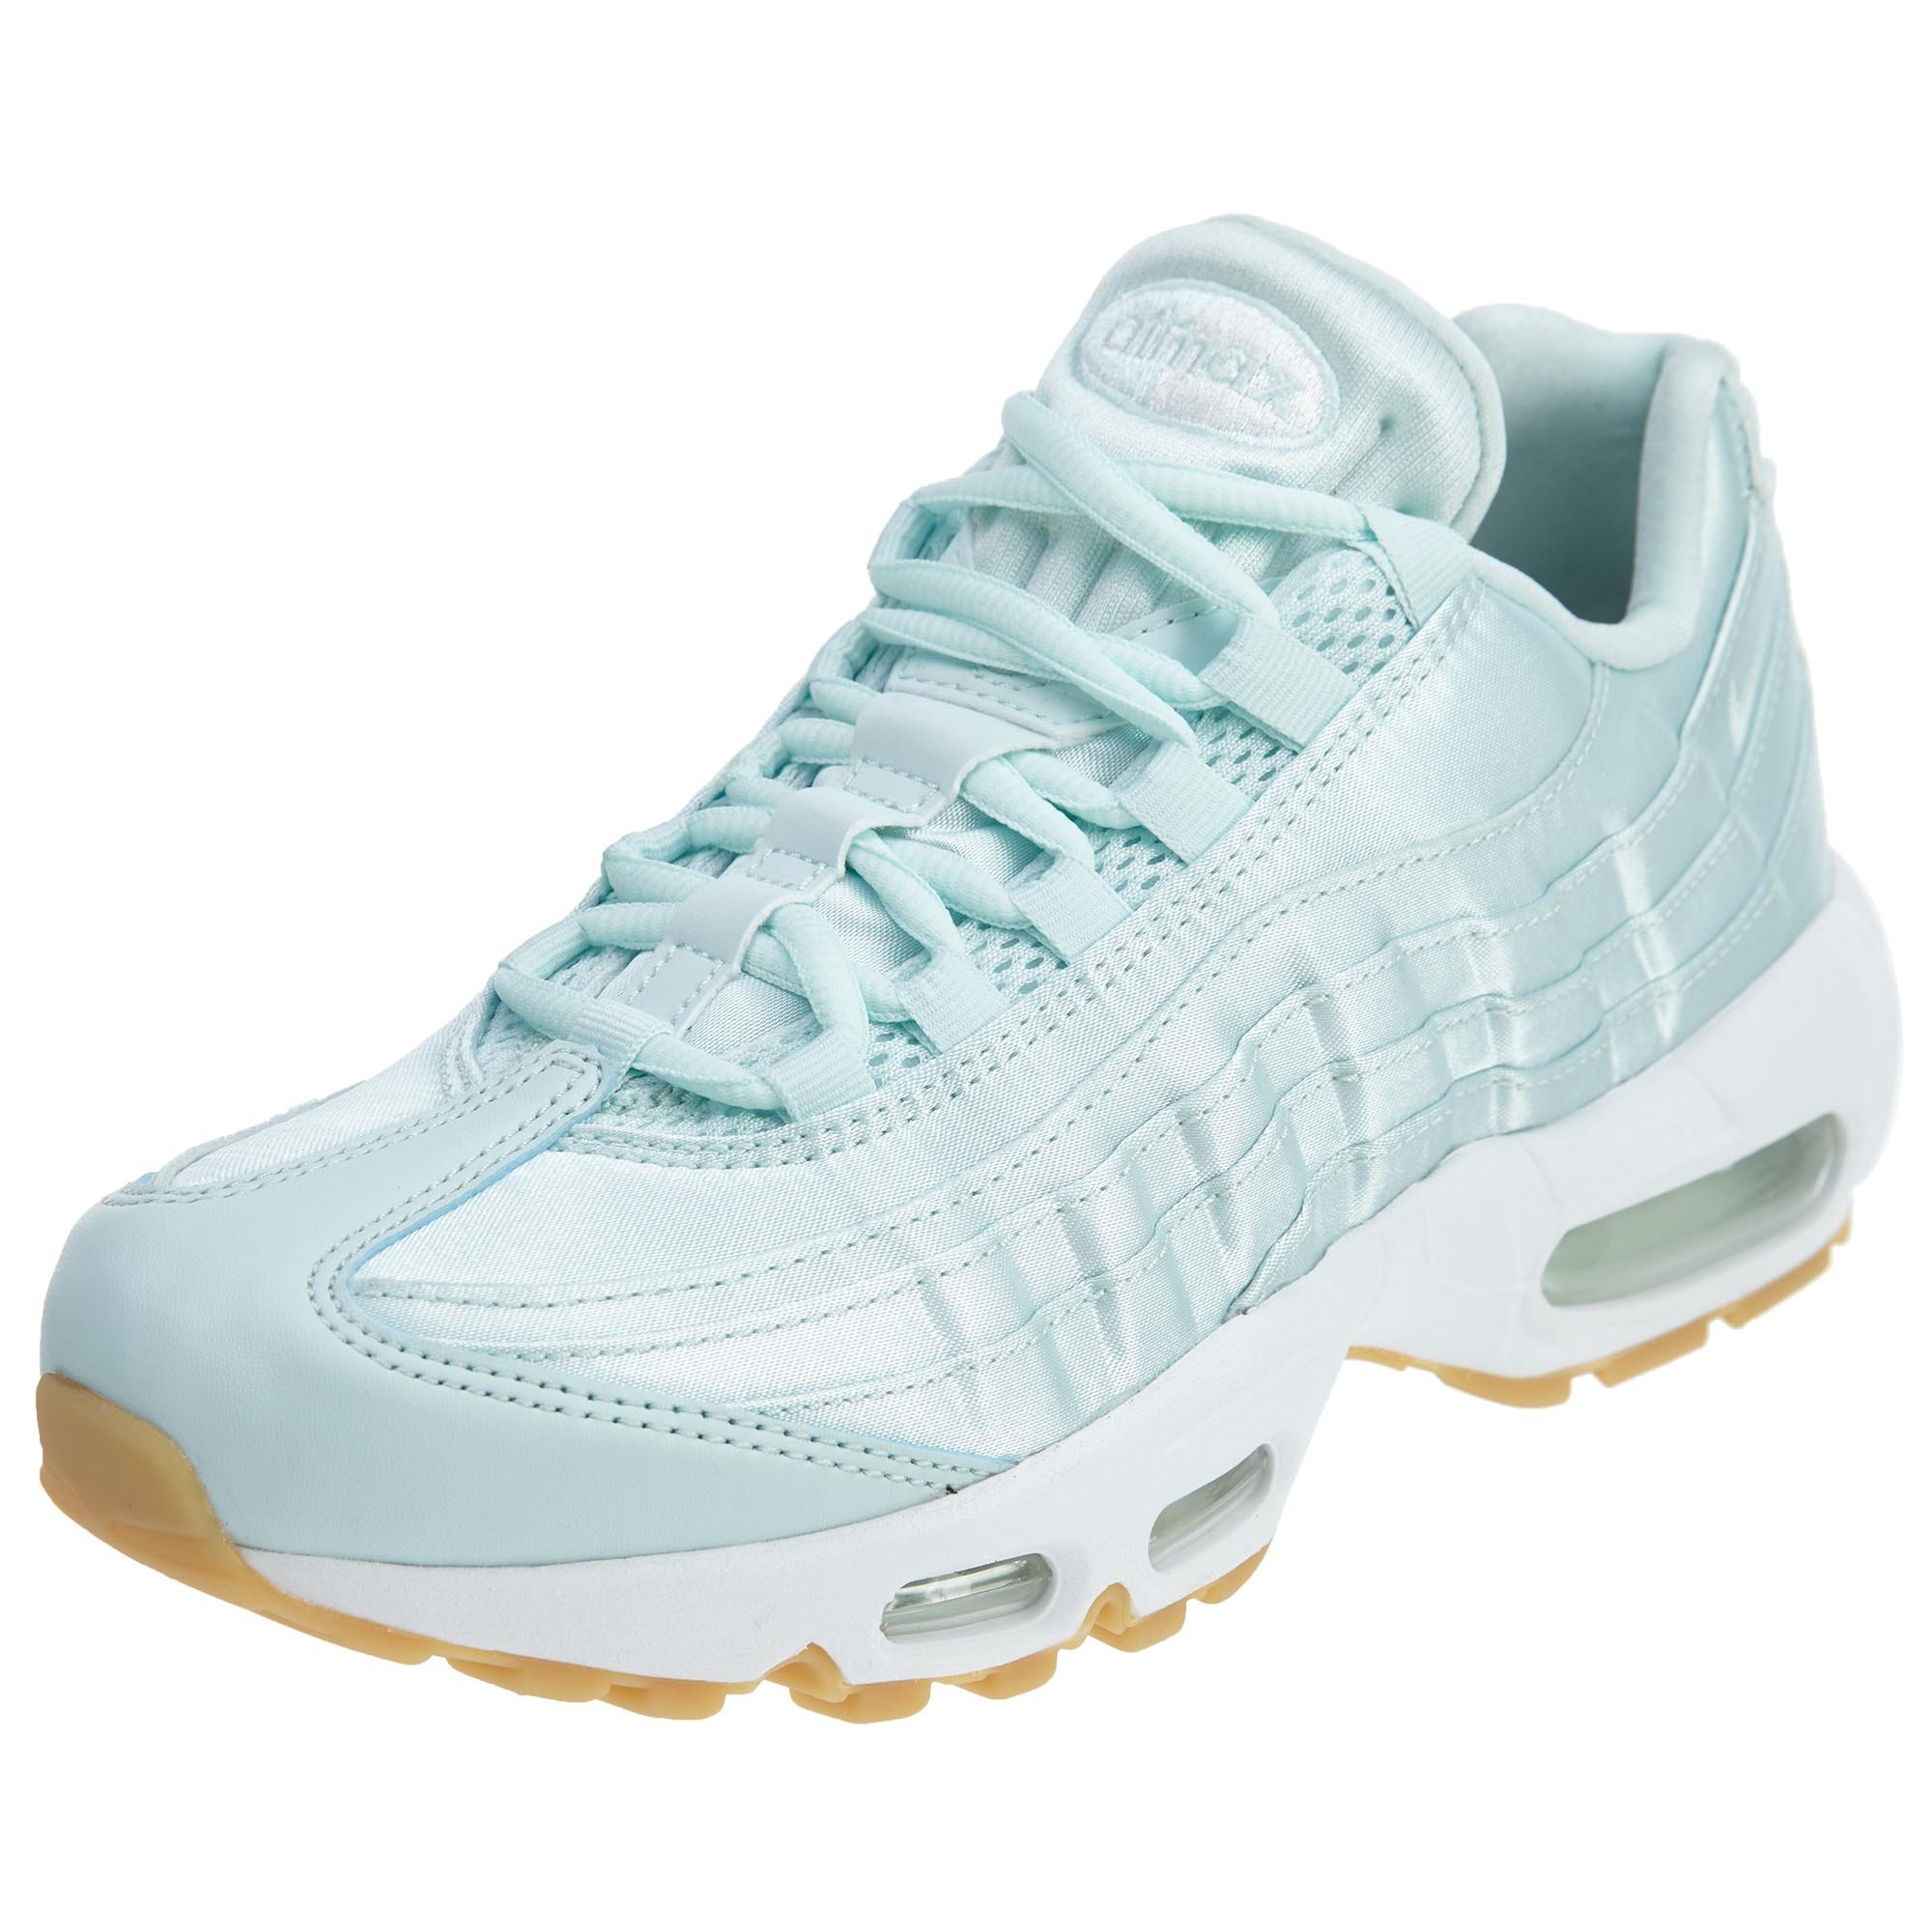 Nike Air Max 95 Wqs Womens Style: 919491-301 Size: 8